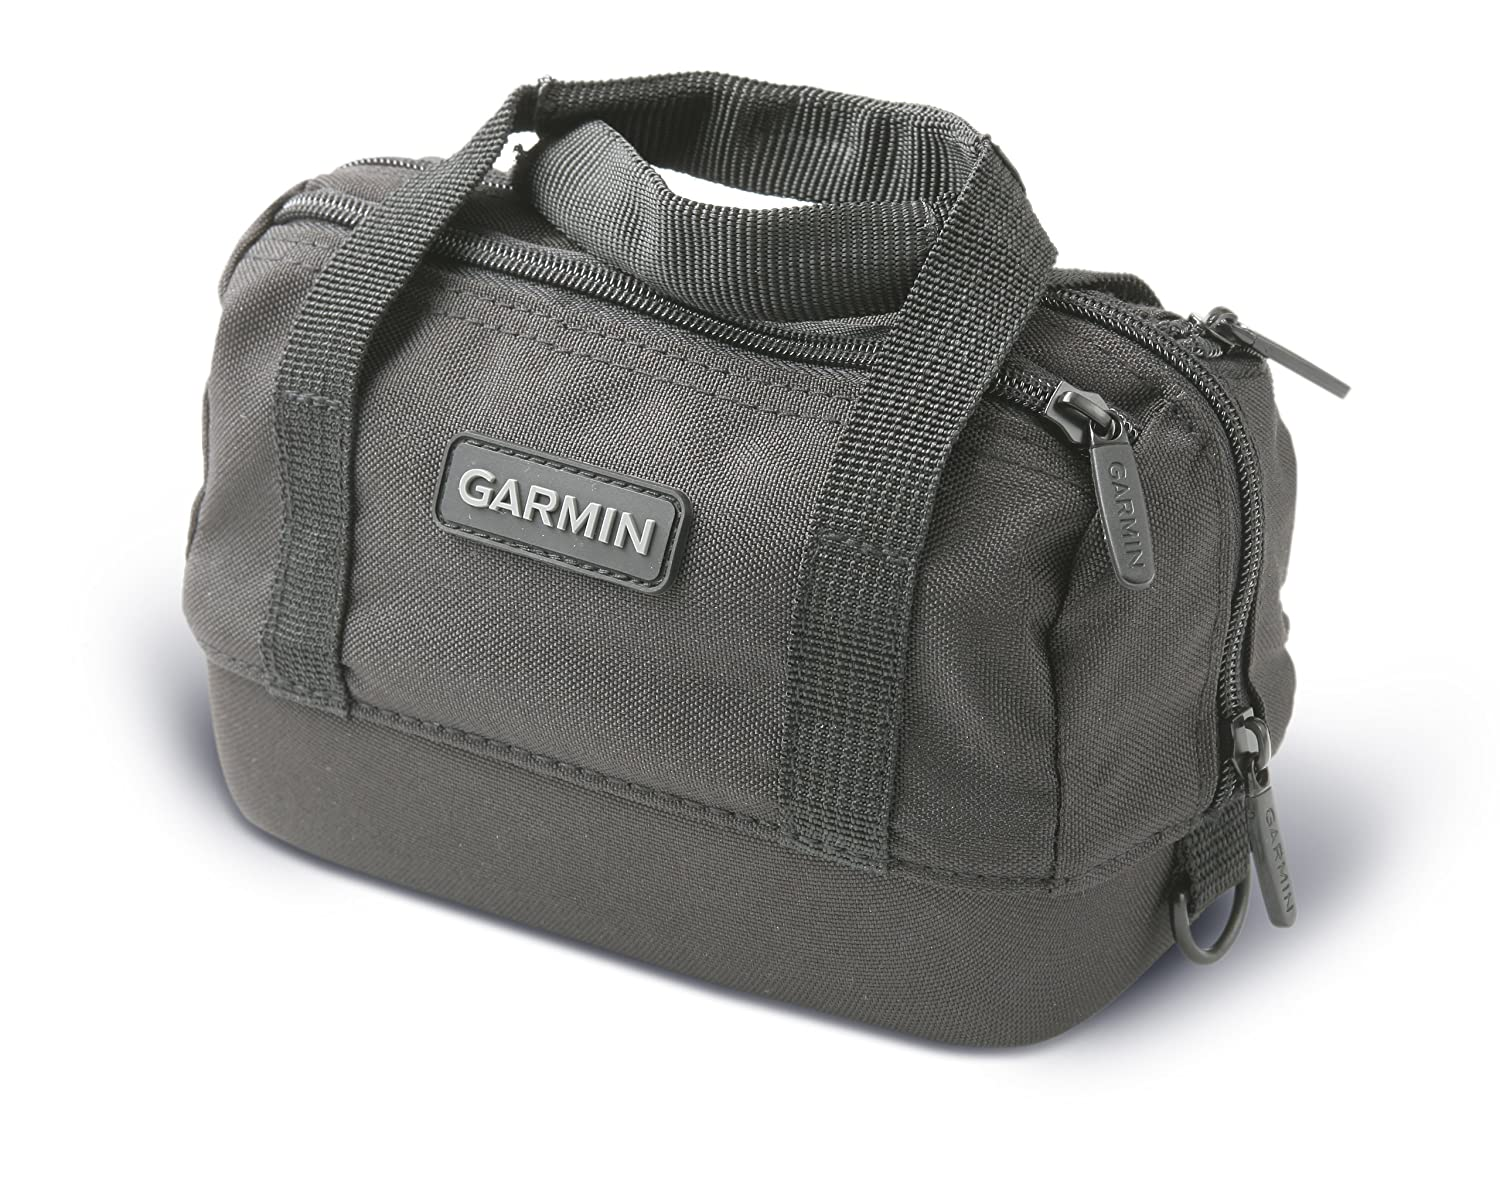 Garmin DELUXE CARRYING CASE